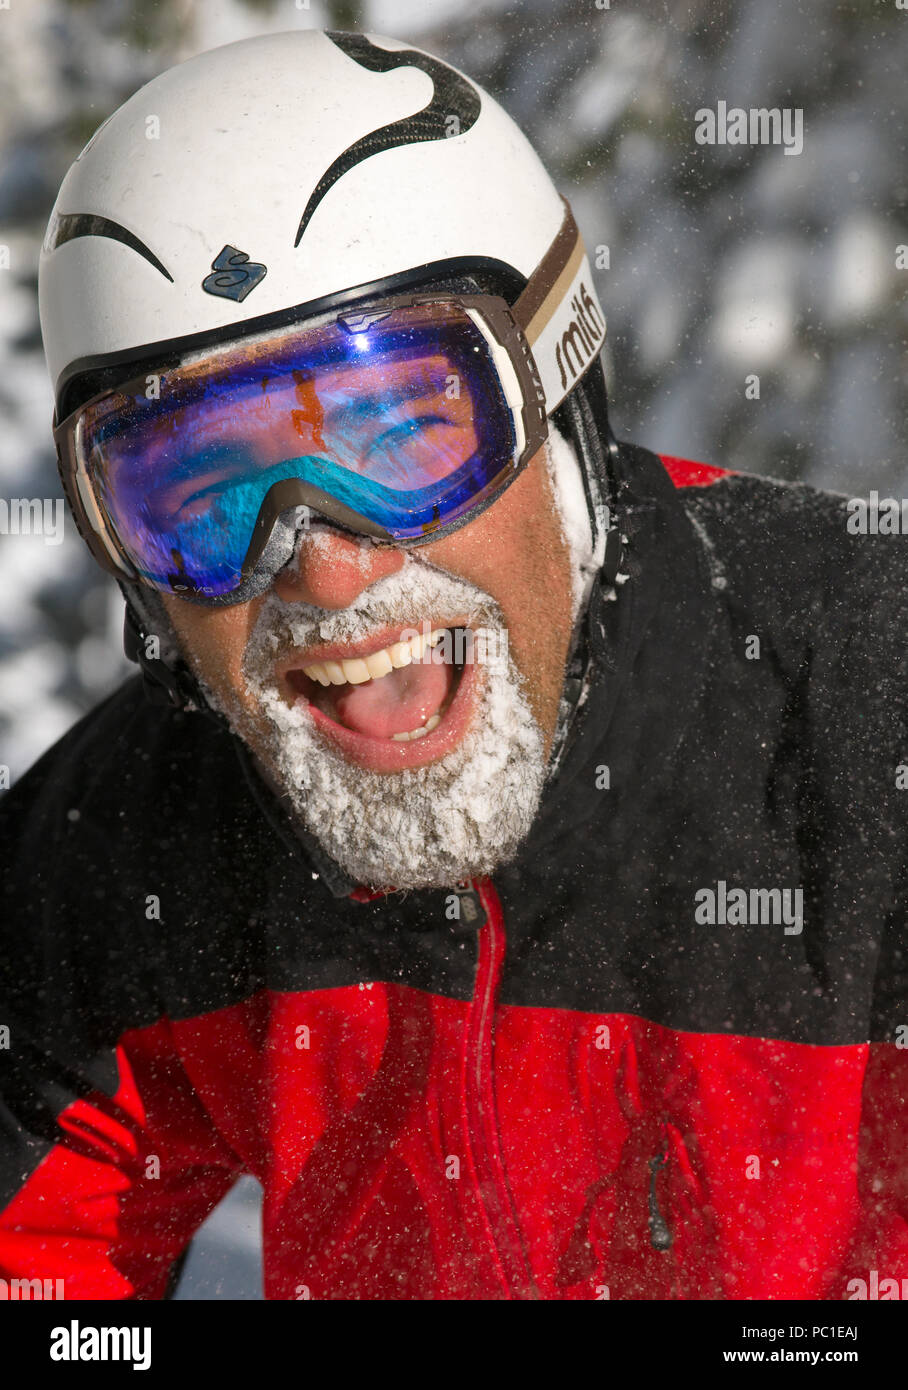 Happy skier face covered in snow after a fresh powder day at Lake Tahoe Ski resorts. Stock Photo